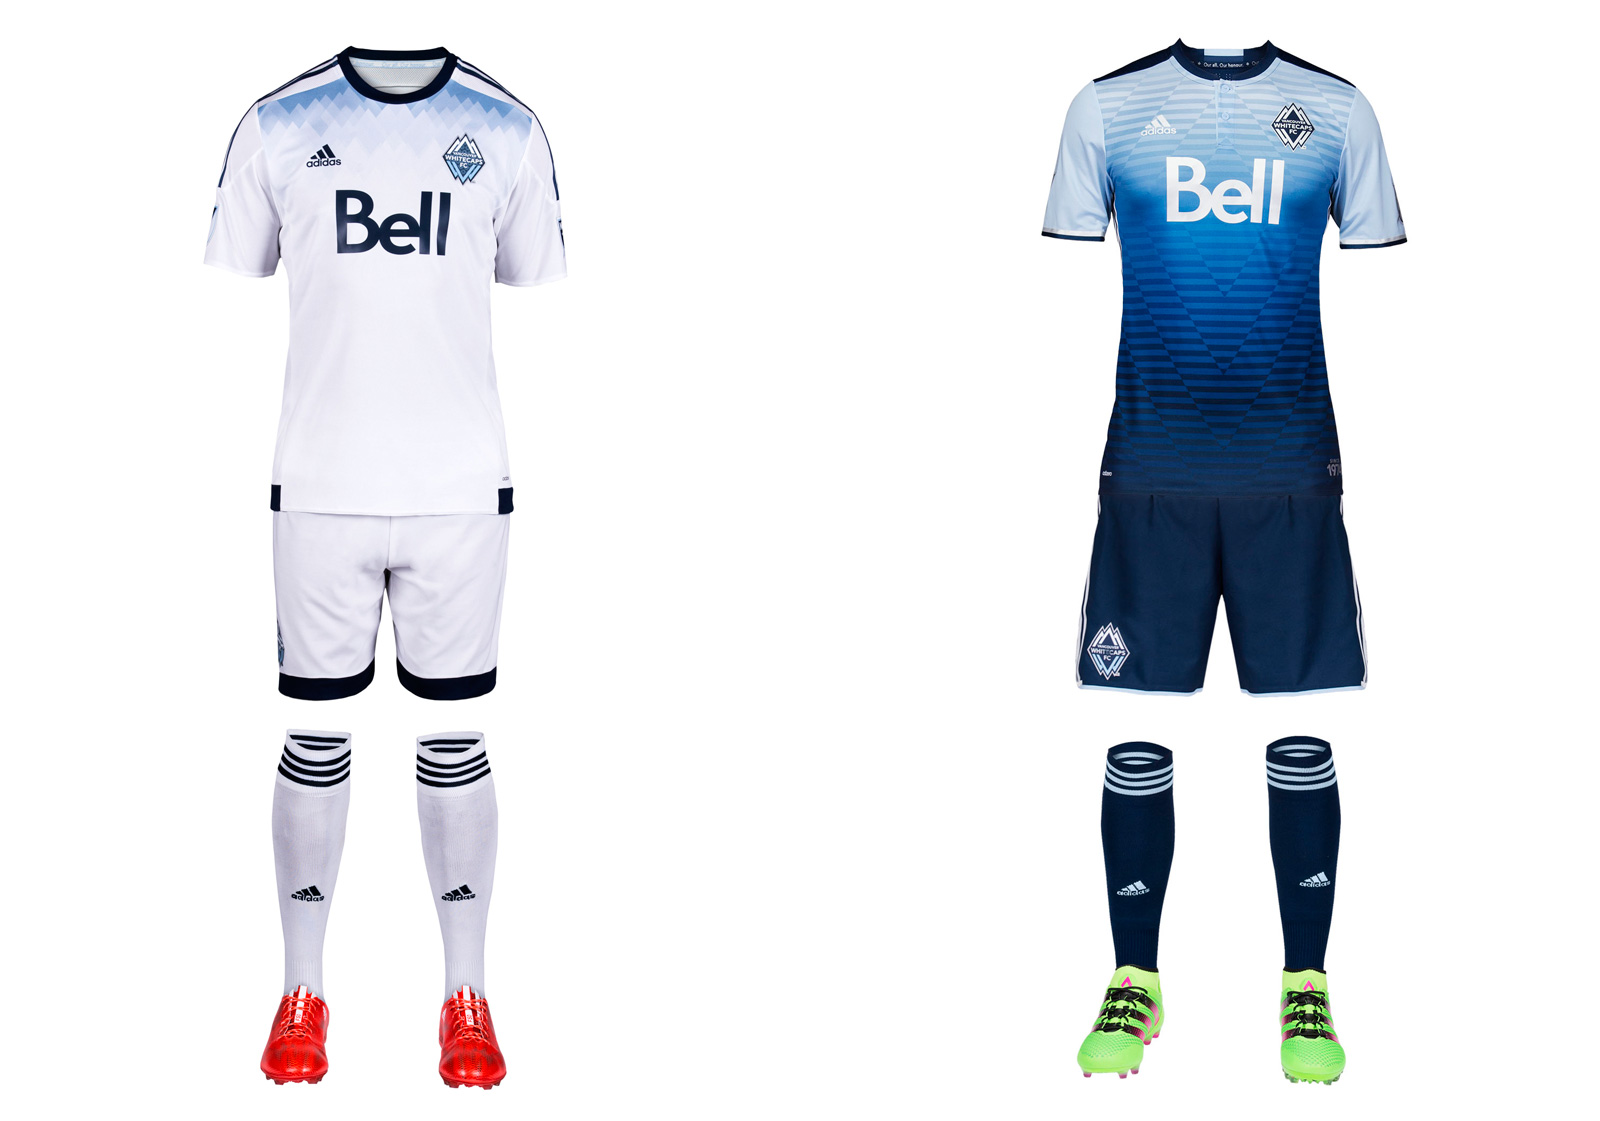 "Vancouver's new away uniform is its most daring design to date, barring the brown third kit introduced in 2012. But where that one was forgettable, the team's ""Sea to Sky"" jersey leaves an impression. The blue gradient evokes the horizon, the North Shore Mountains reflecting on the surface of the water and the club's initials. It's gorgeous. The all-white primary carries over from 2015. It includes a bit of subtle blue shading at the shoulders but is otherwise pretty anonymous. The Whitecaps just proved they can do better."